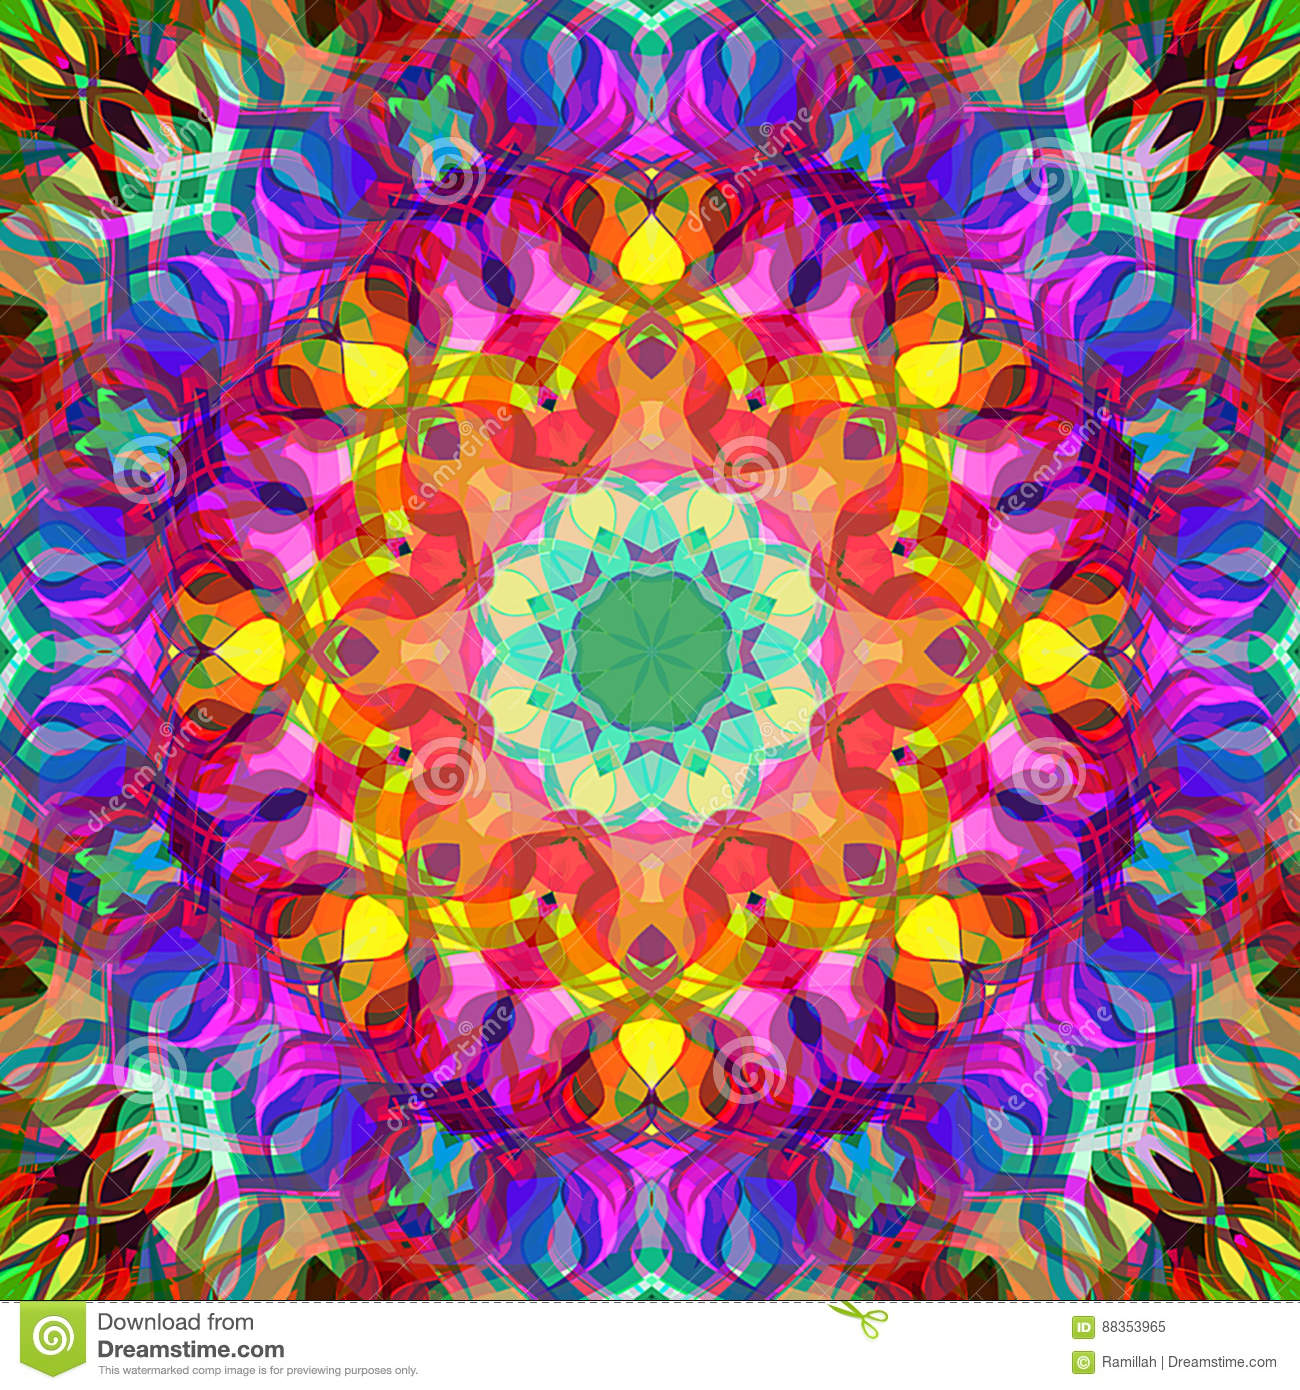 Digital Painting Beautiful Abstract Colorful Floral